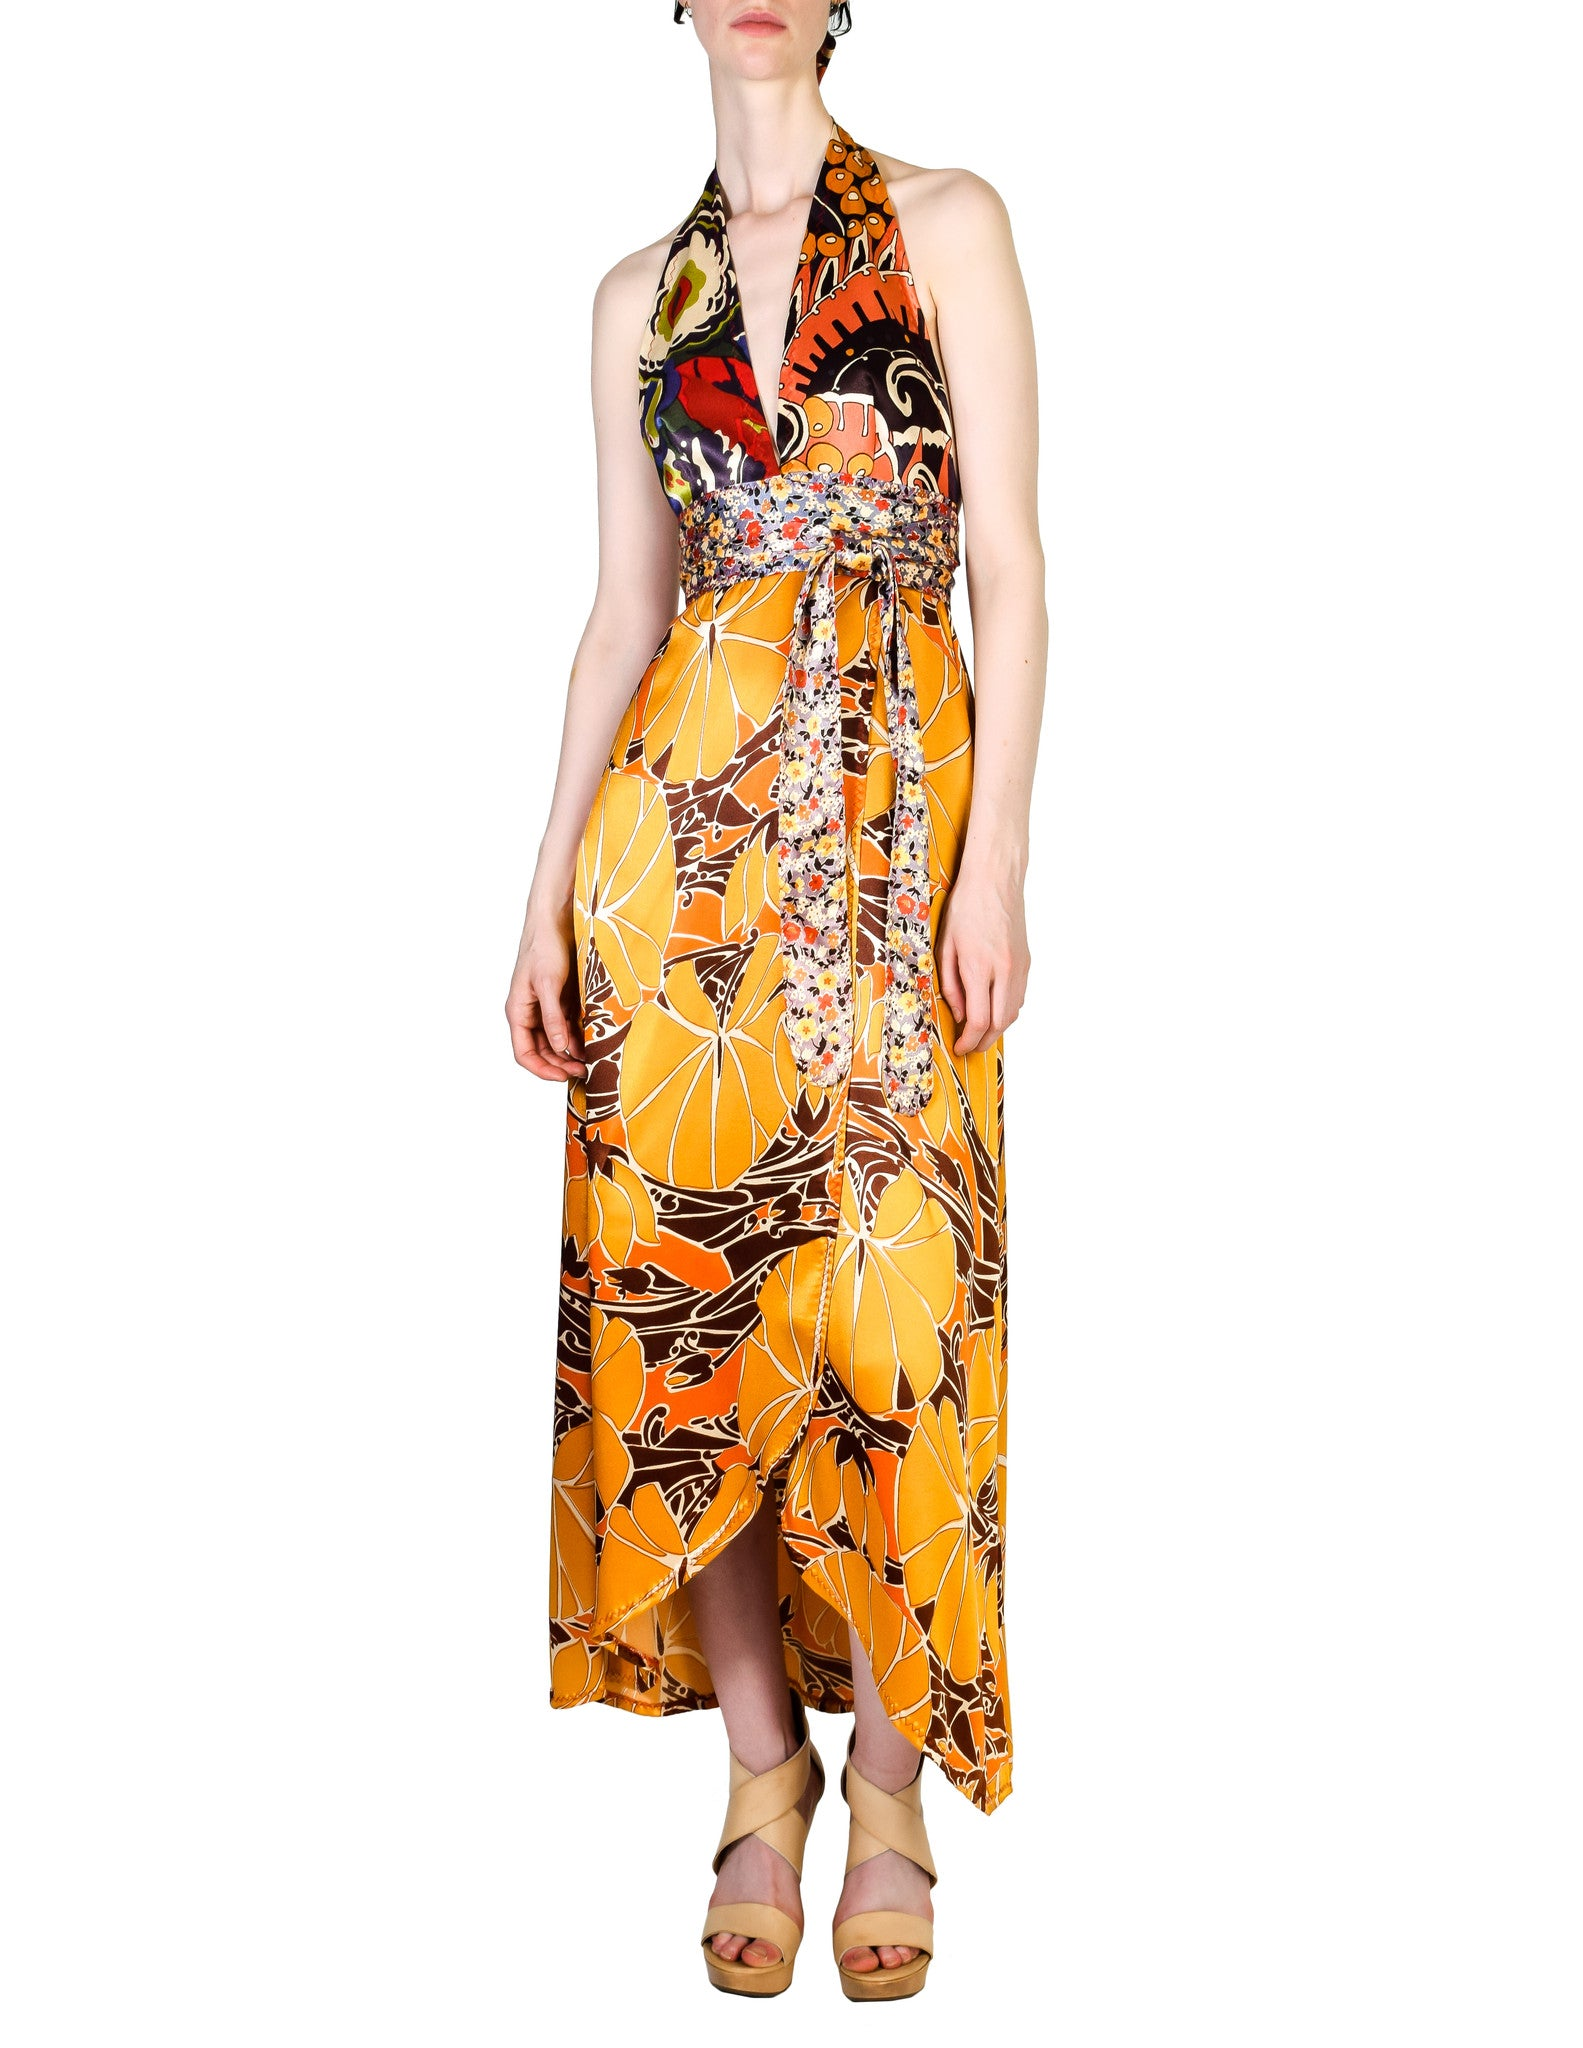 Stephen Burrows Vintage Floral Halter Wrap Dress - Amarcord Vintage Fashion  - 1